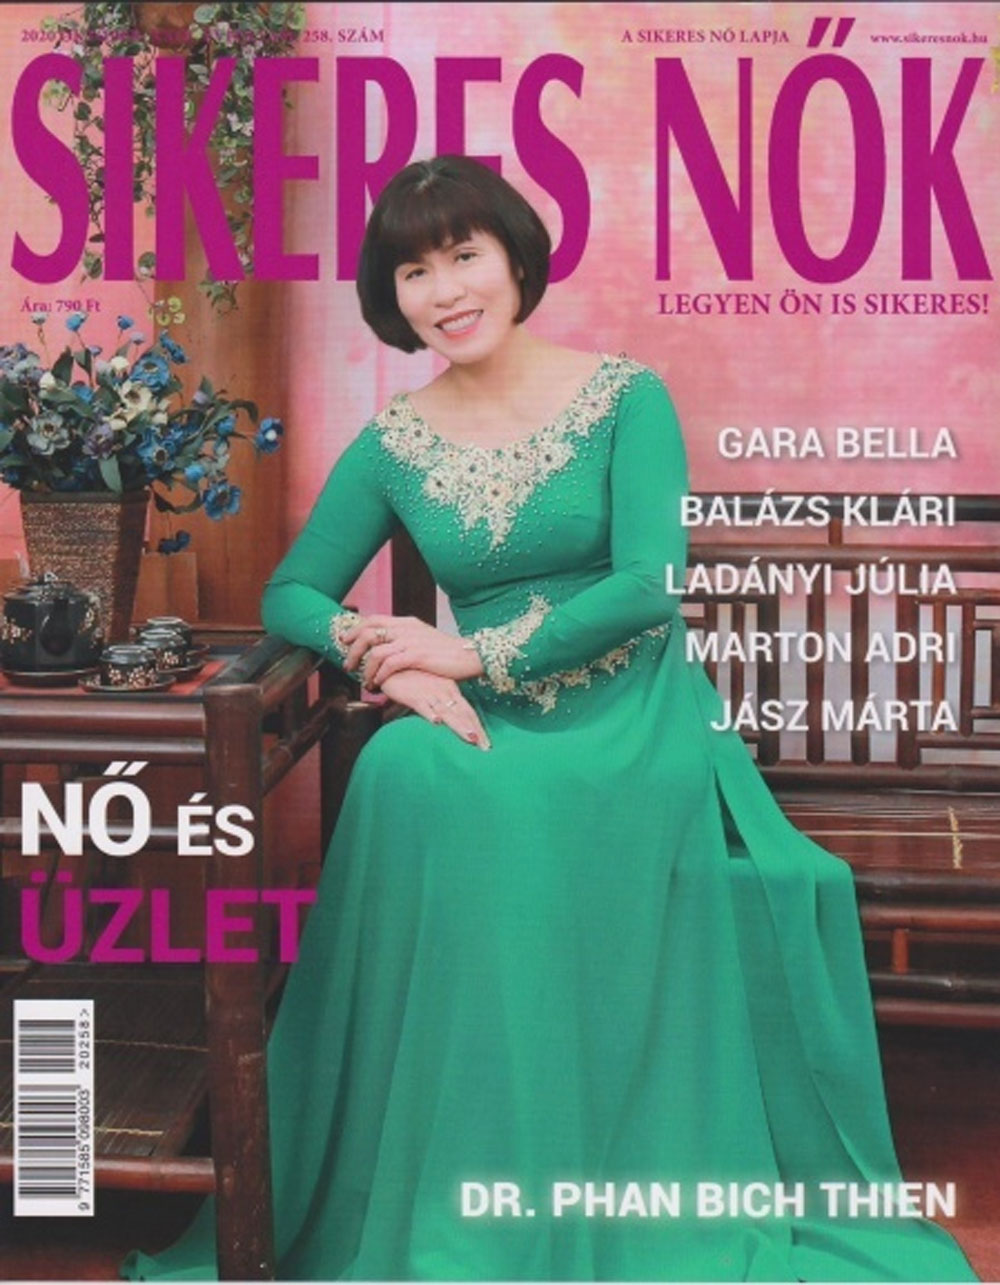 Hungarian magazine, Vietnamese businesswoman, Vietnamese immigrant, Phan Bich Thien, Covid-19-induced slump, five successful women